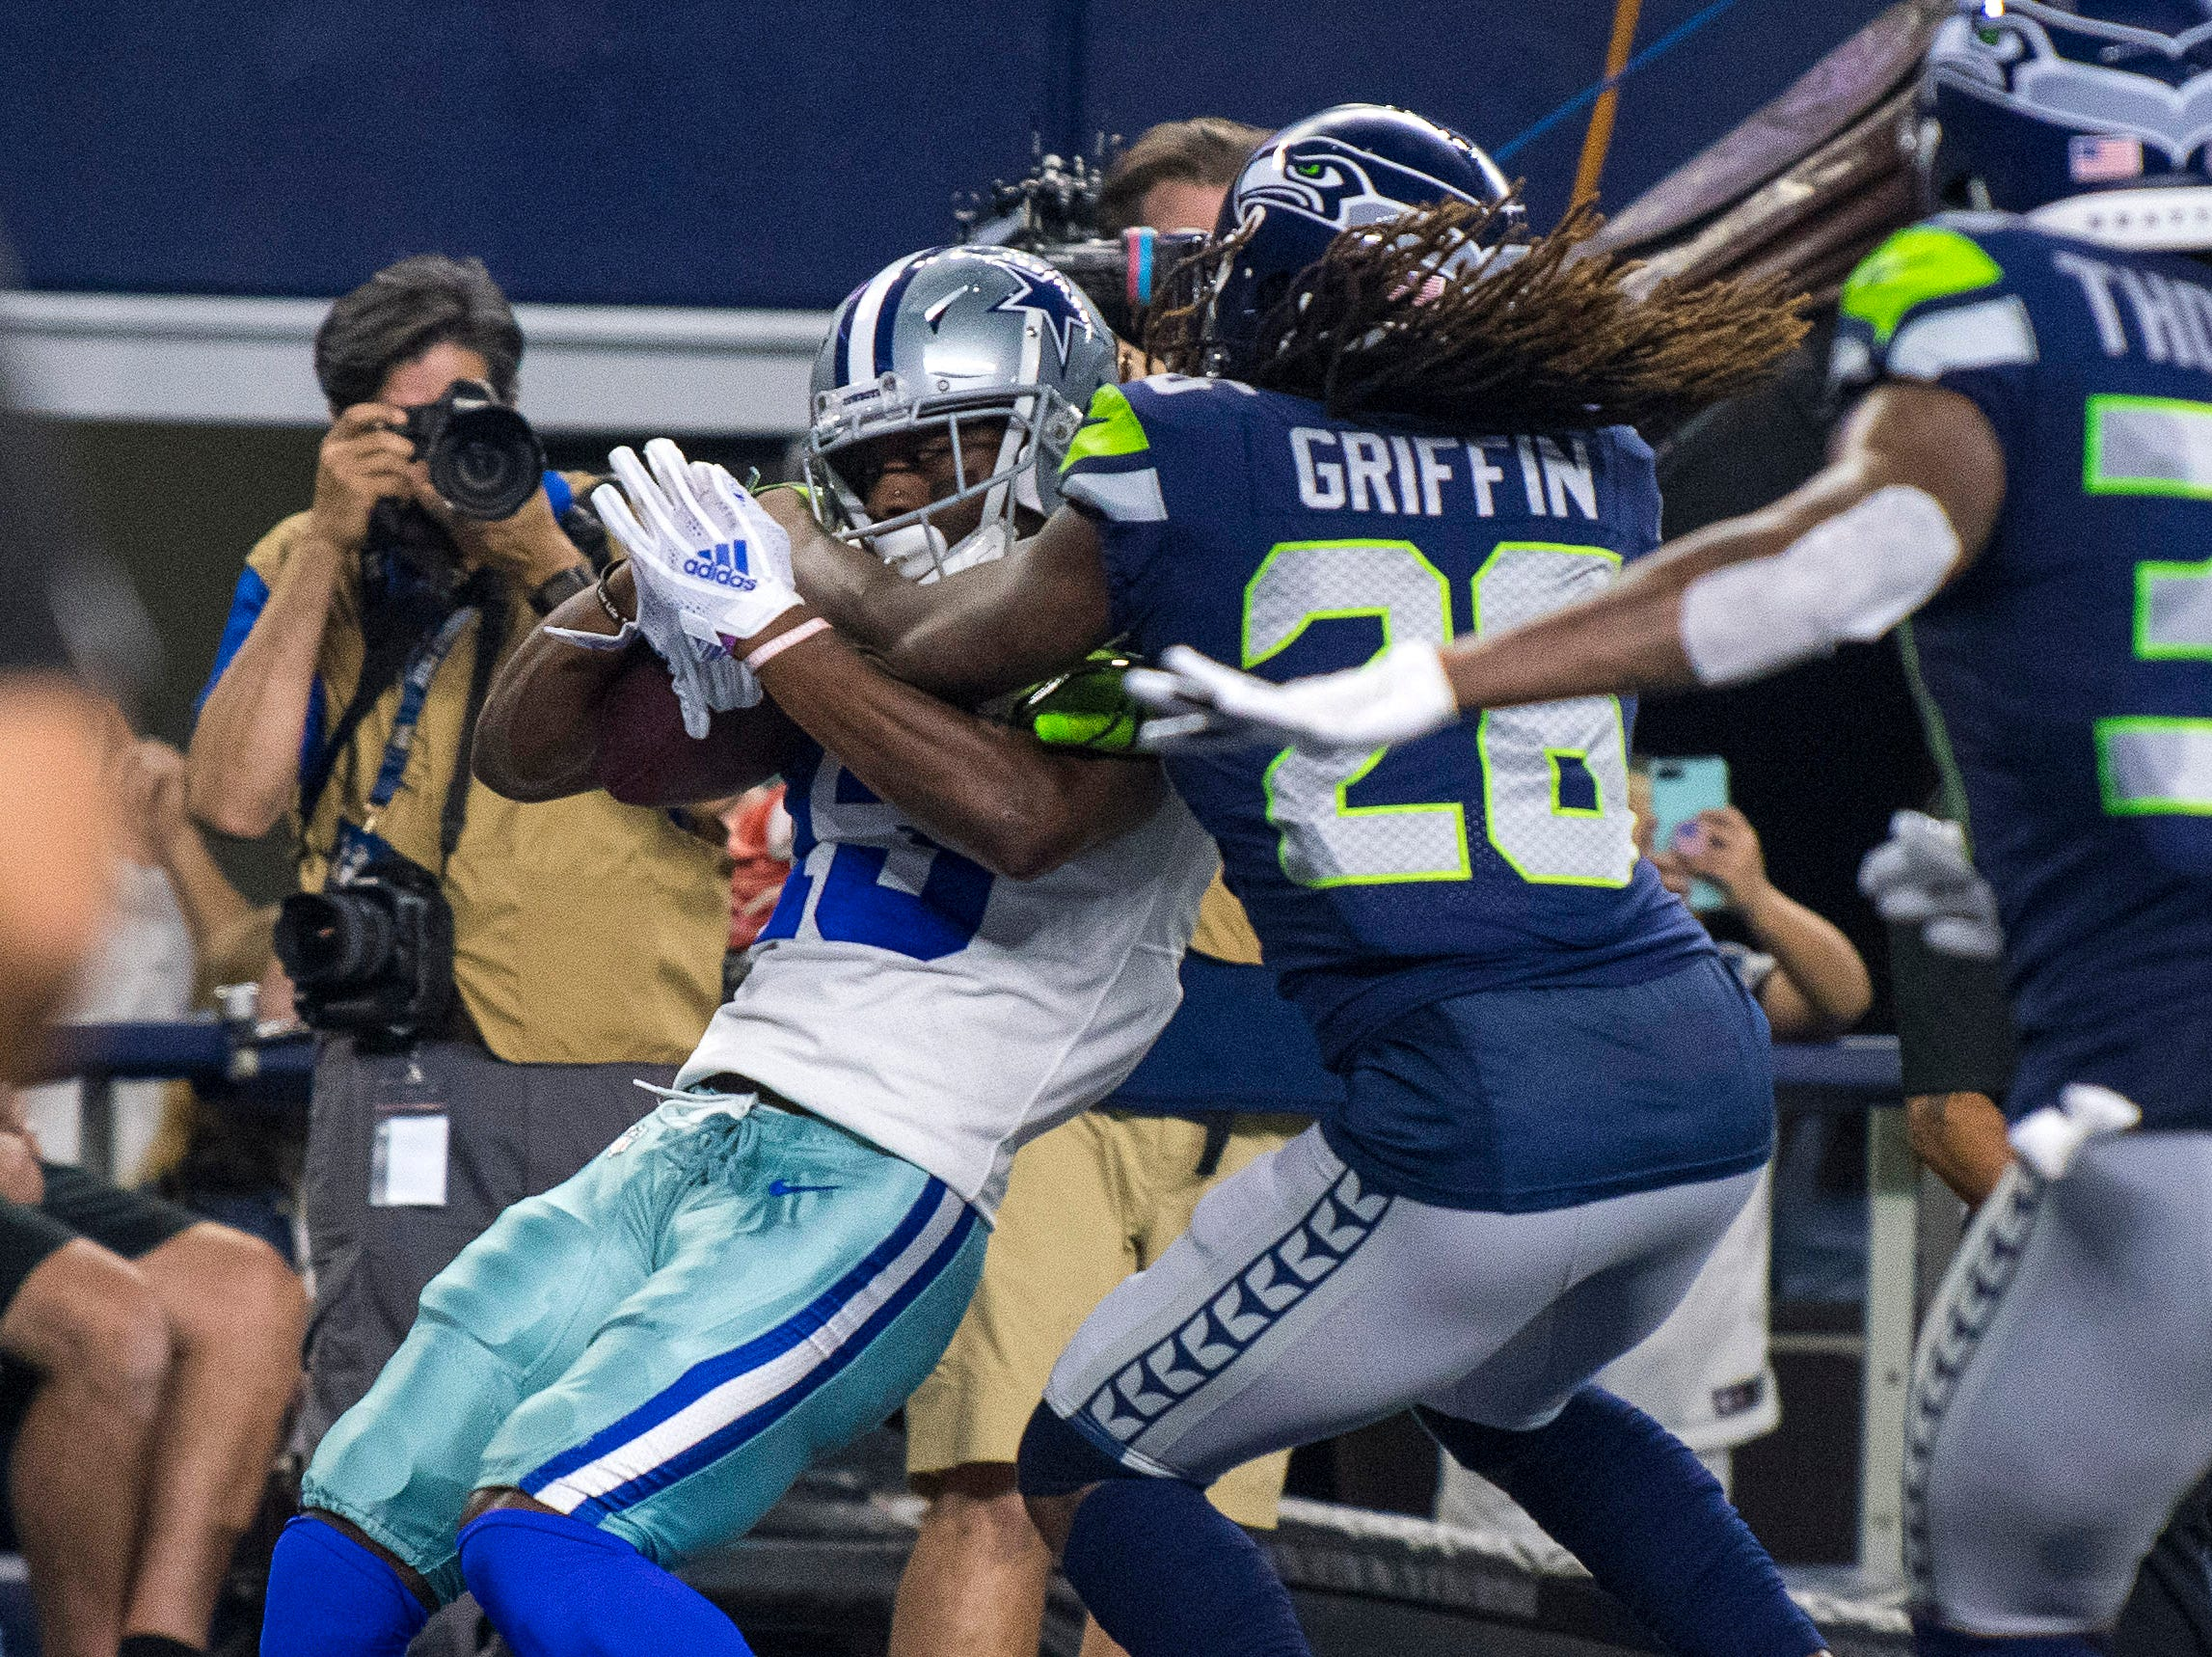 Dallas Cowboys wide receiver Michael Gallup (13) catches a pass for a touchdown against the Seattle Seahawks during the second quarter at AT&T Stadium.